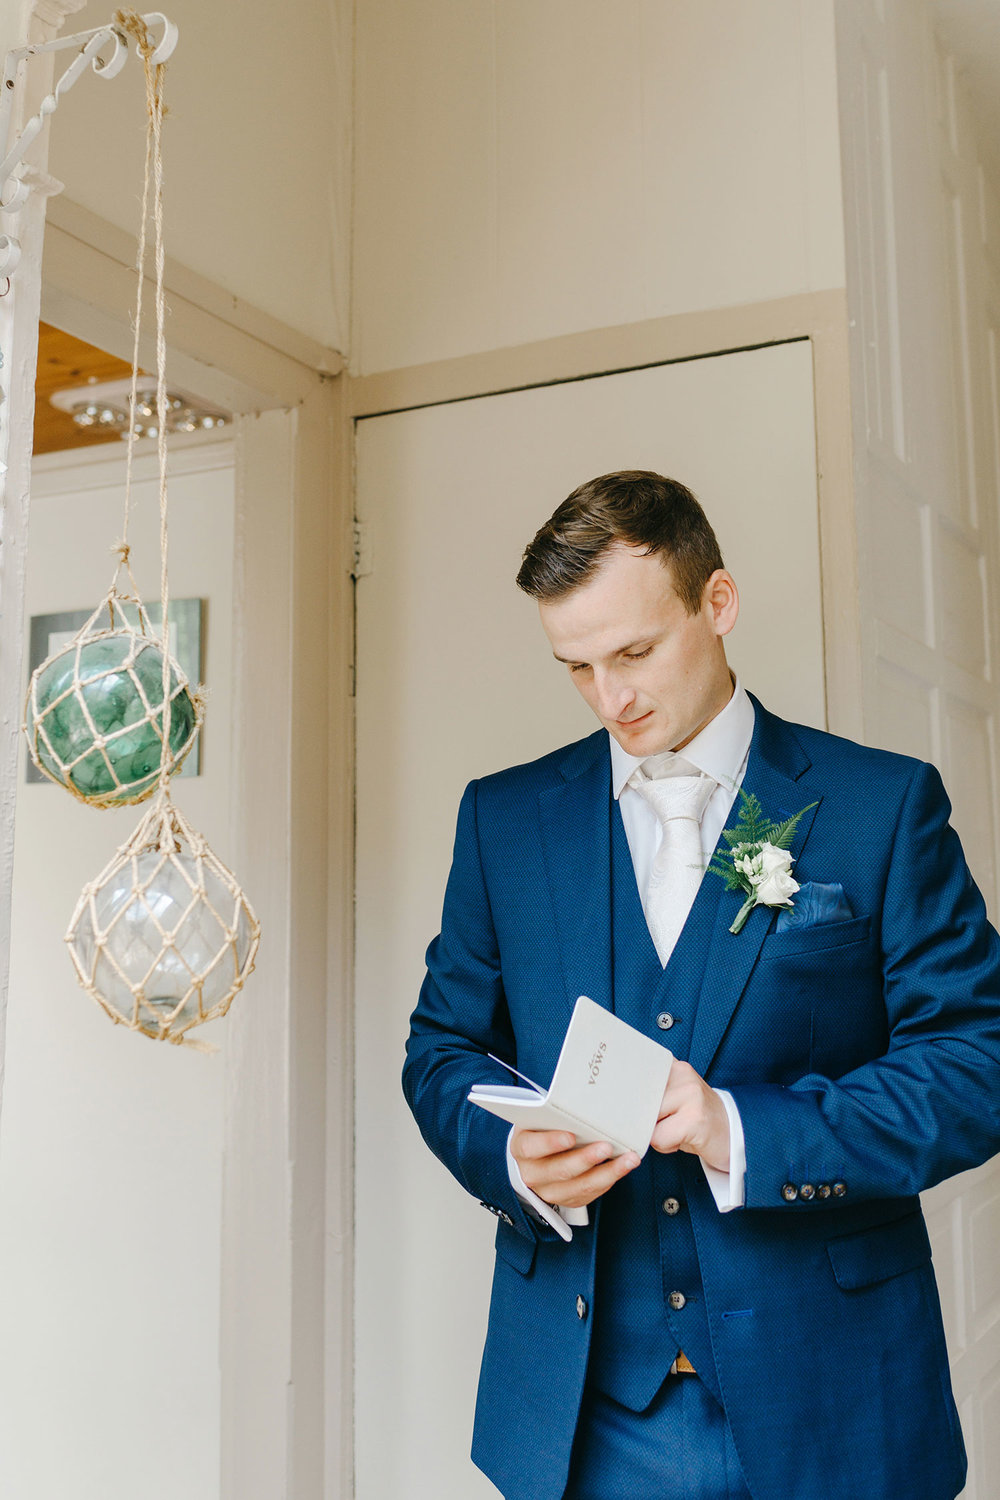 destination-wedding-photographer-ballinacurra-house-wedding-20180711_0016.jpg